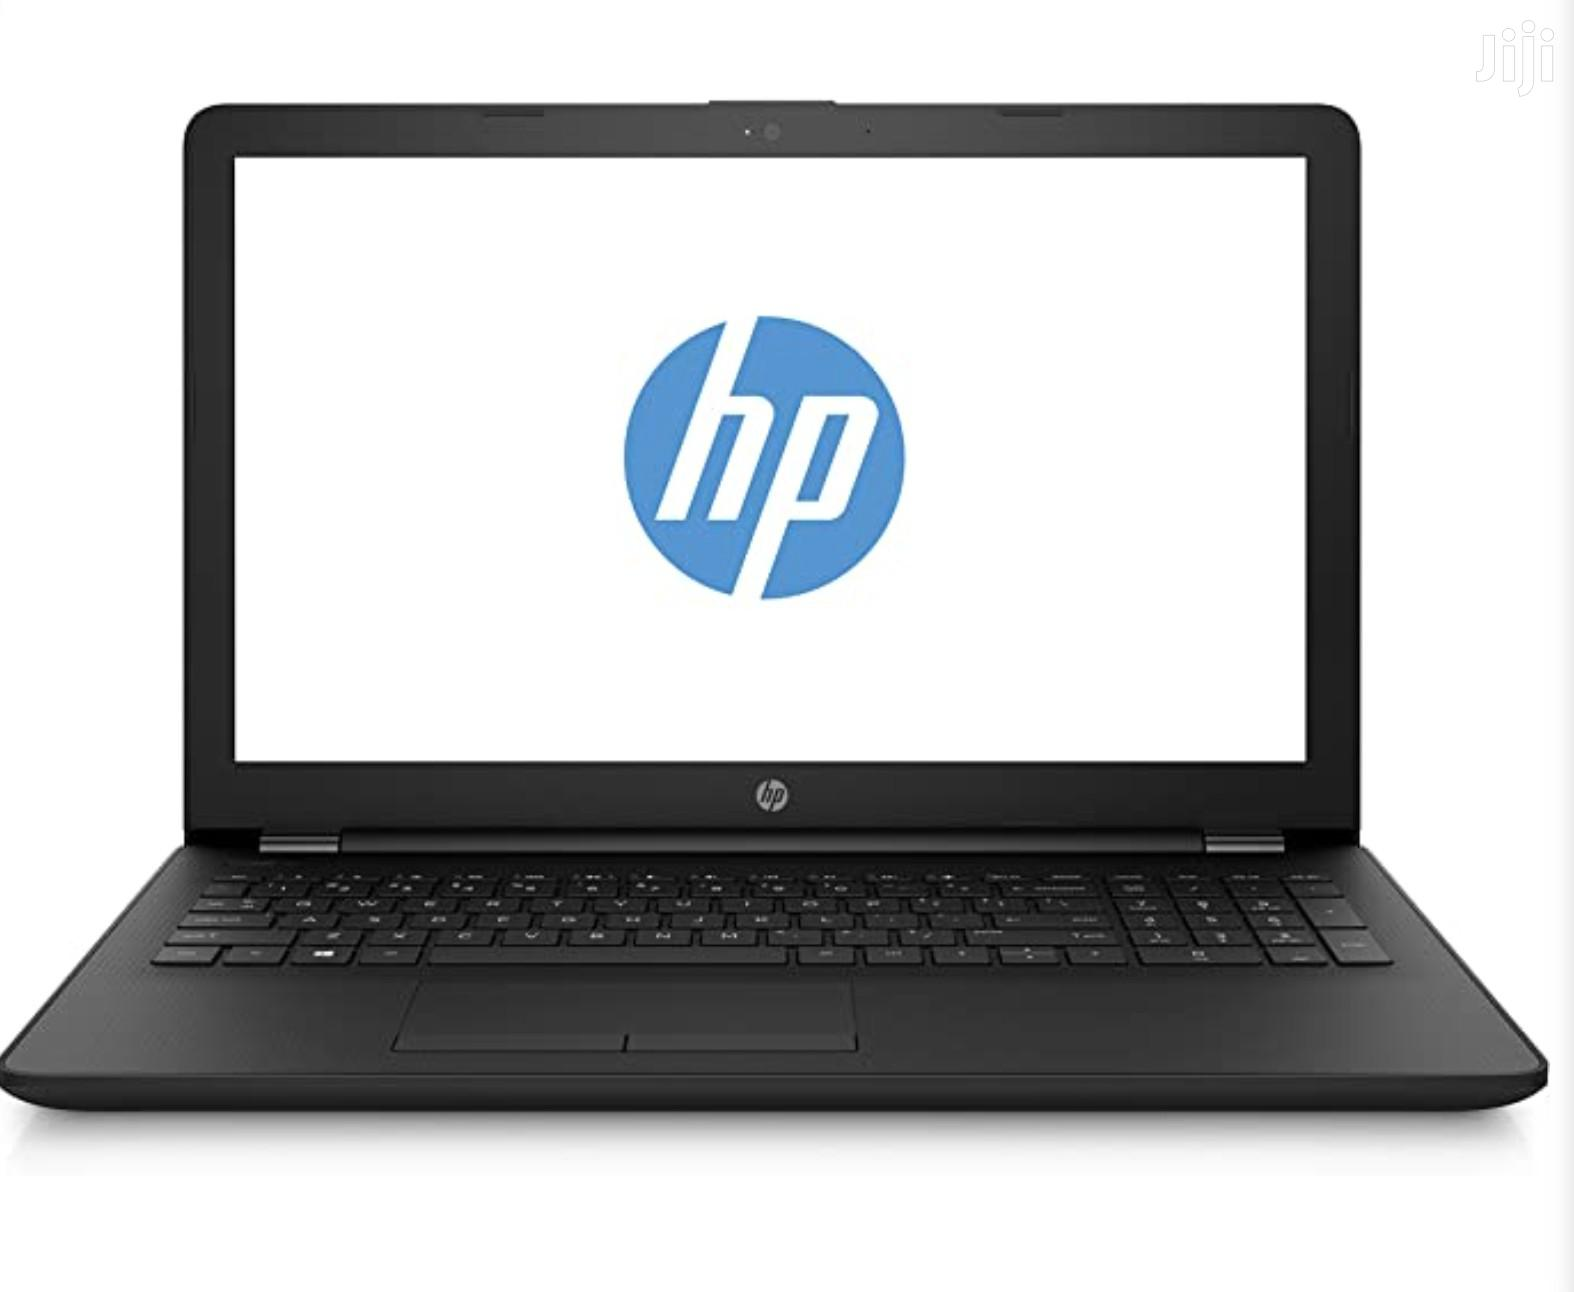 New Laptop HP 15-F272wm 4GB Intel Pentium SSD 500GB | Laptops & Computers for sale in Accra Metropolitan, Greater Accra, Ghana